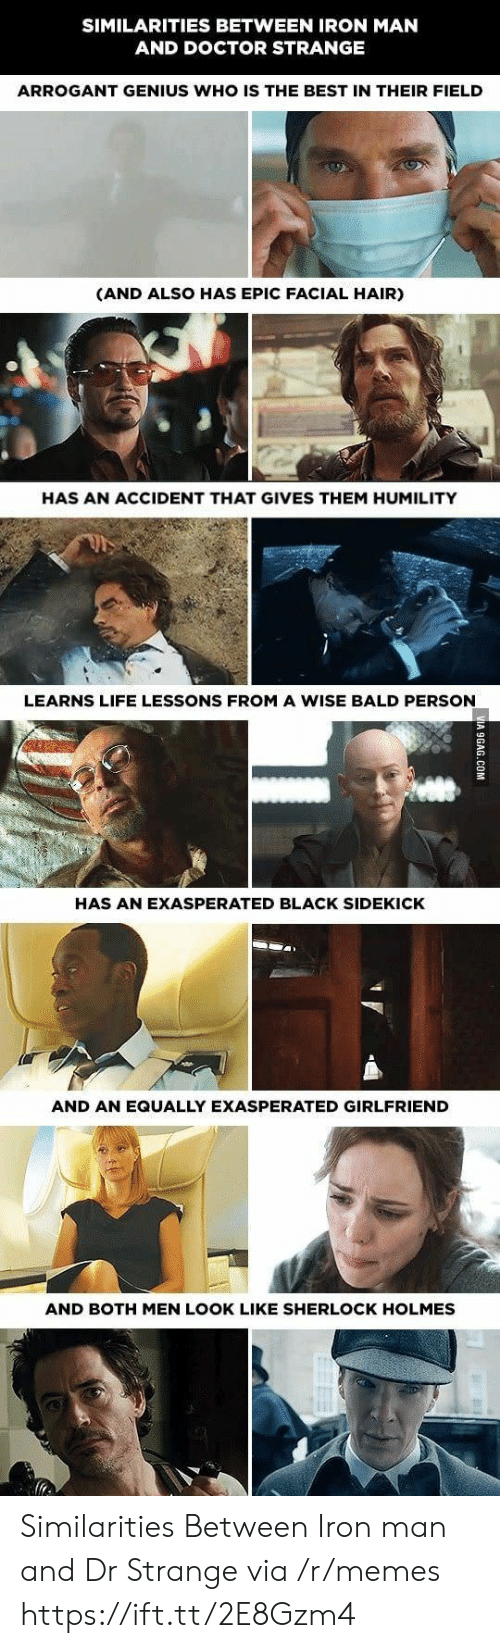 Sherlock Holmes: SIMILARITIES BETWEEN IRON MAN  AND DOCTOR STRANGE  ARROGANT GENIUS WHO IS THE BEST IN THEIR FIELD  (AND ALSO HAS EPIC FACIAL HAIR)  HAS AN ACCIDENT THAT GIVES THEM HUMILITY  LEARNS LIFE LESSONS FROM A WISE BALD PERSON  HAS AN EXASPERATED BLACK SIDEKICK  AND AN EQUALLY EXASPERATED GIRLFRIEND  AND BOTH MEN LOOK LIKE SHERLOCK HOLMES Similarities Between Iron man and Dr Strange via /r/memes https://ift.tt/2E8Gzm4